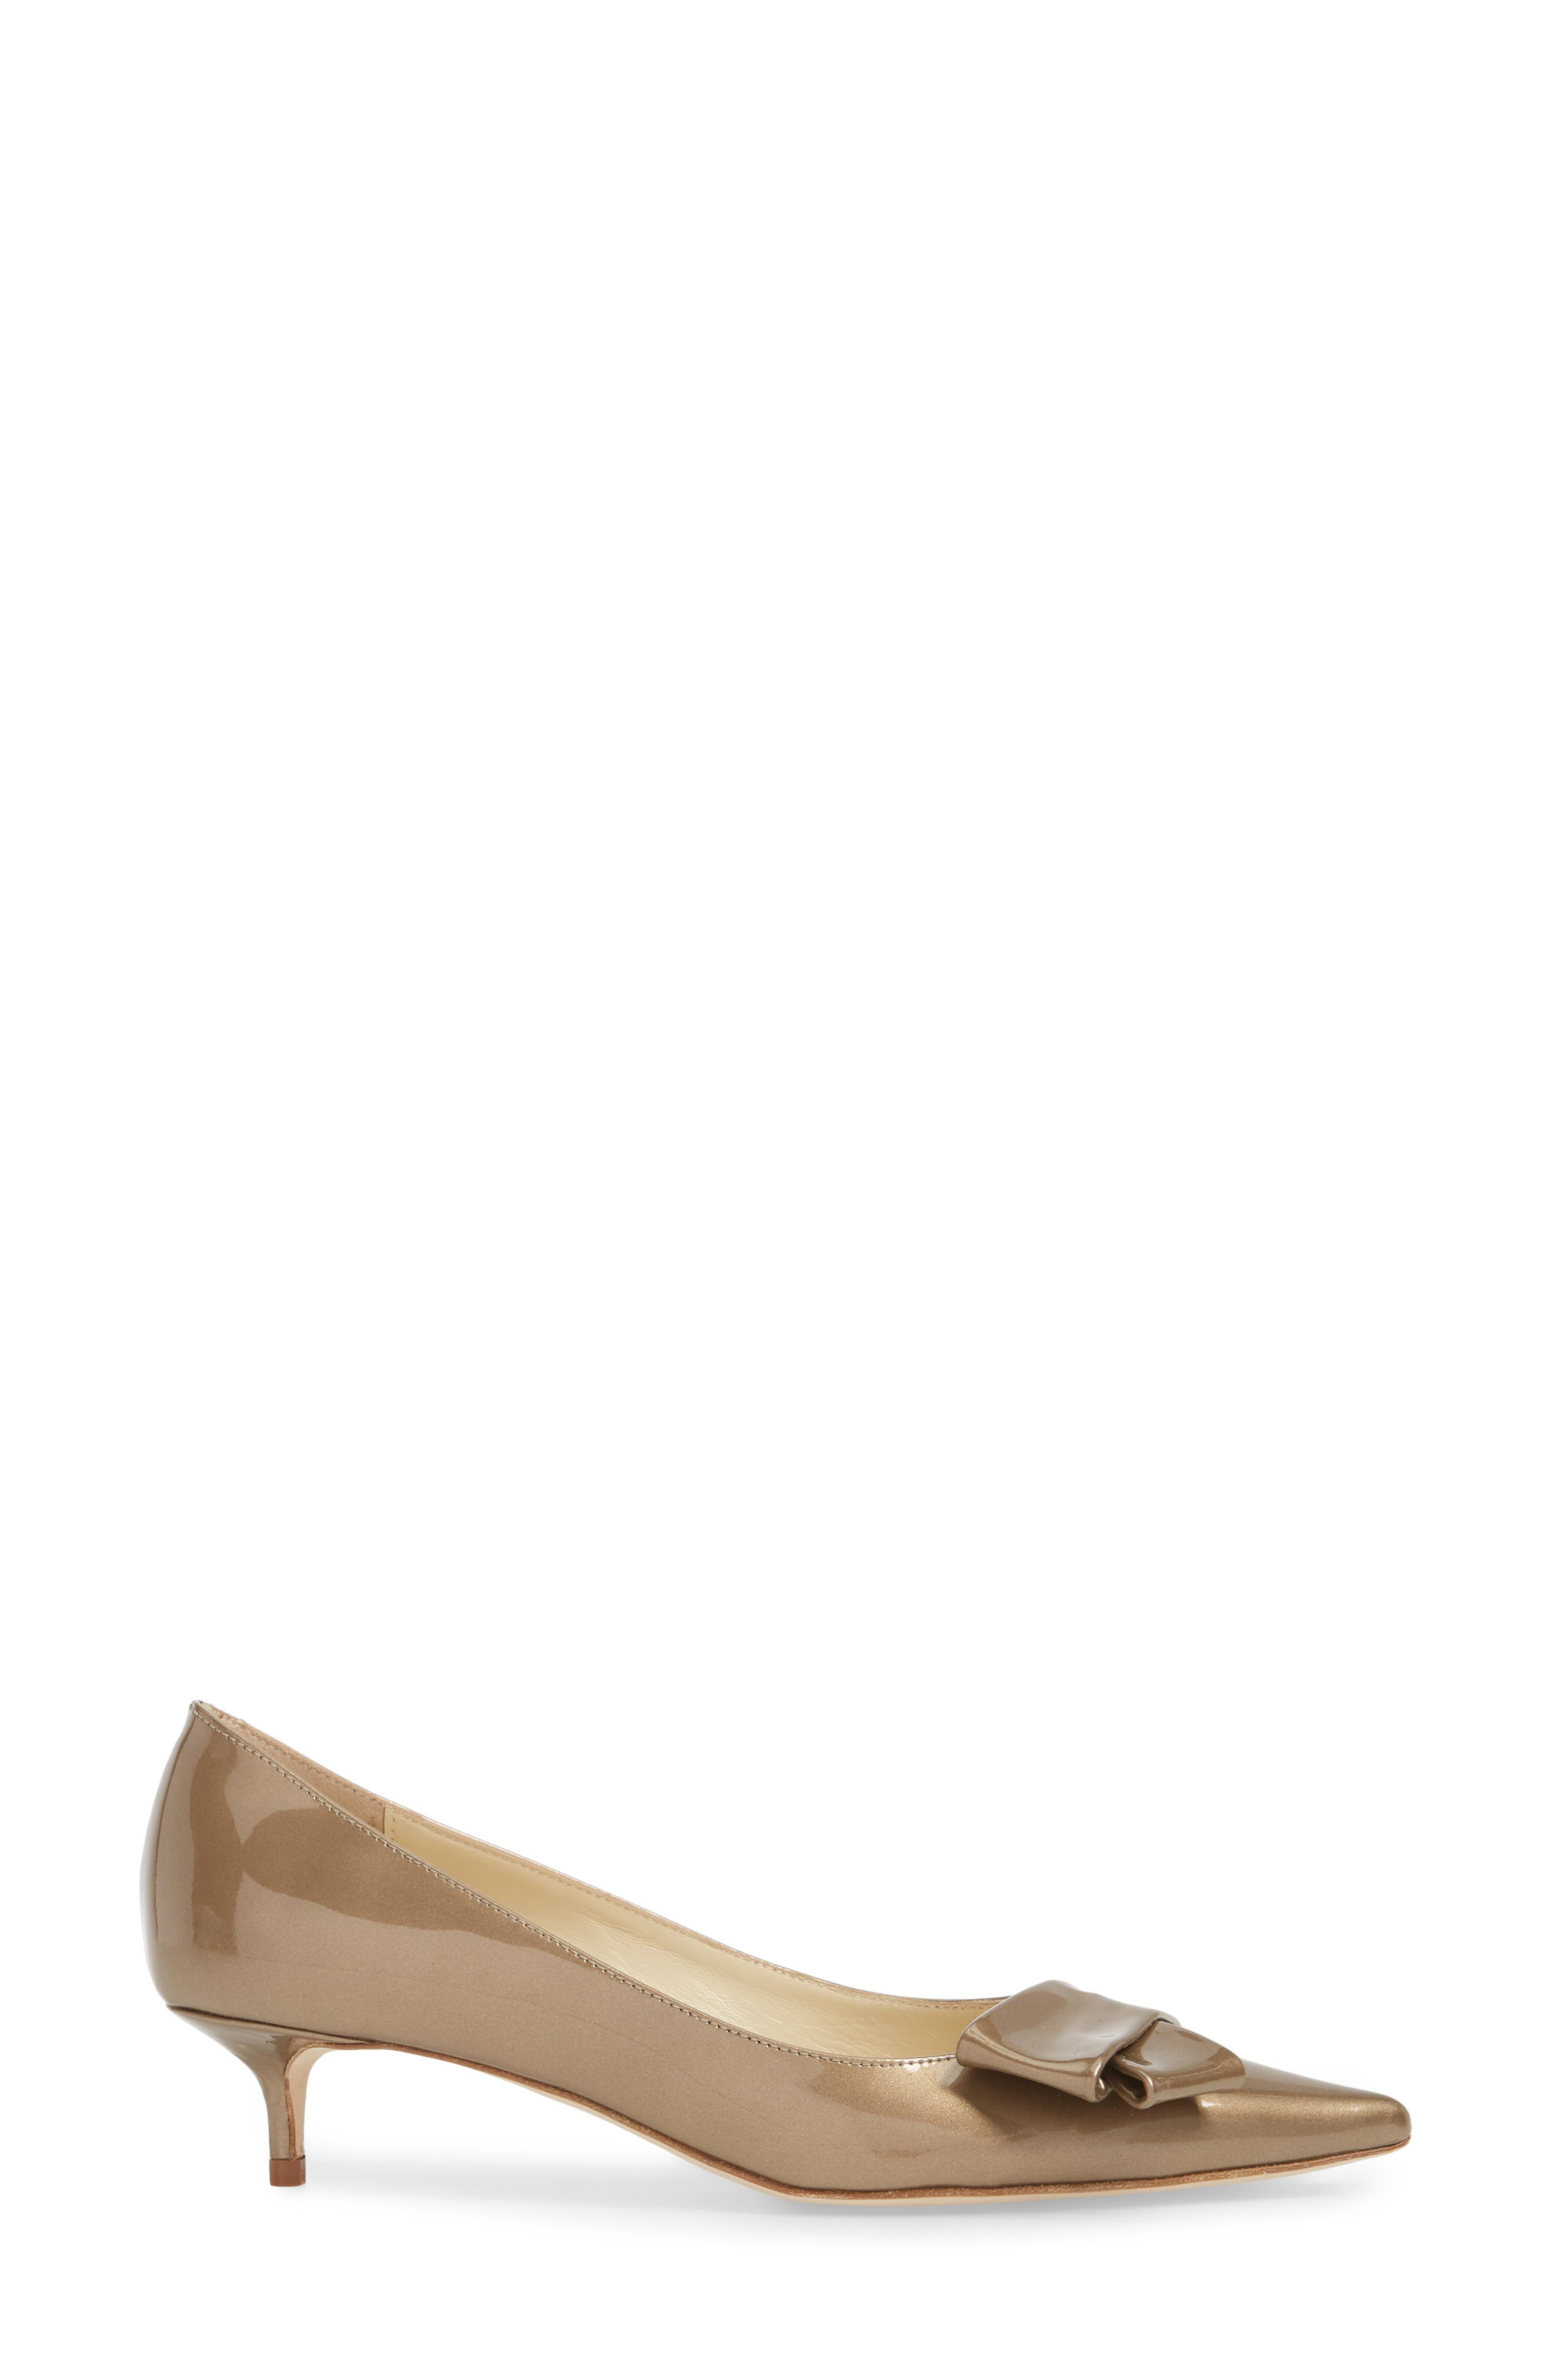 Butter Bliss Pointy Toe Pump,                             Alternate thumbnail 8, color,